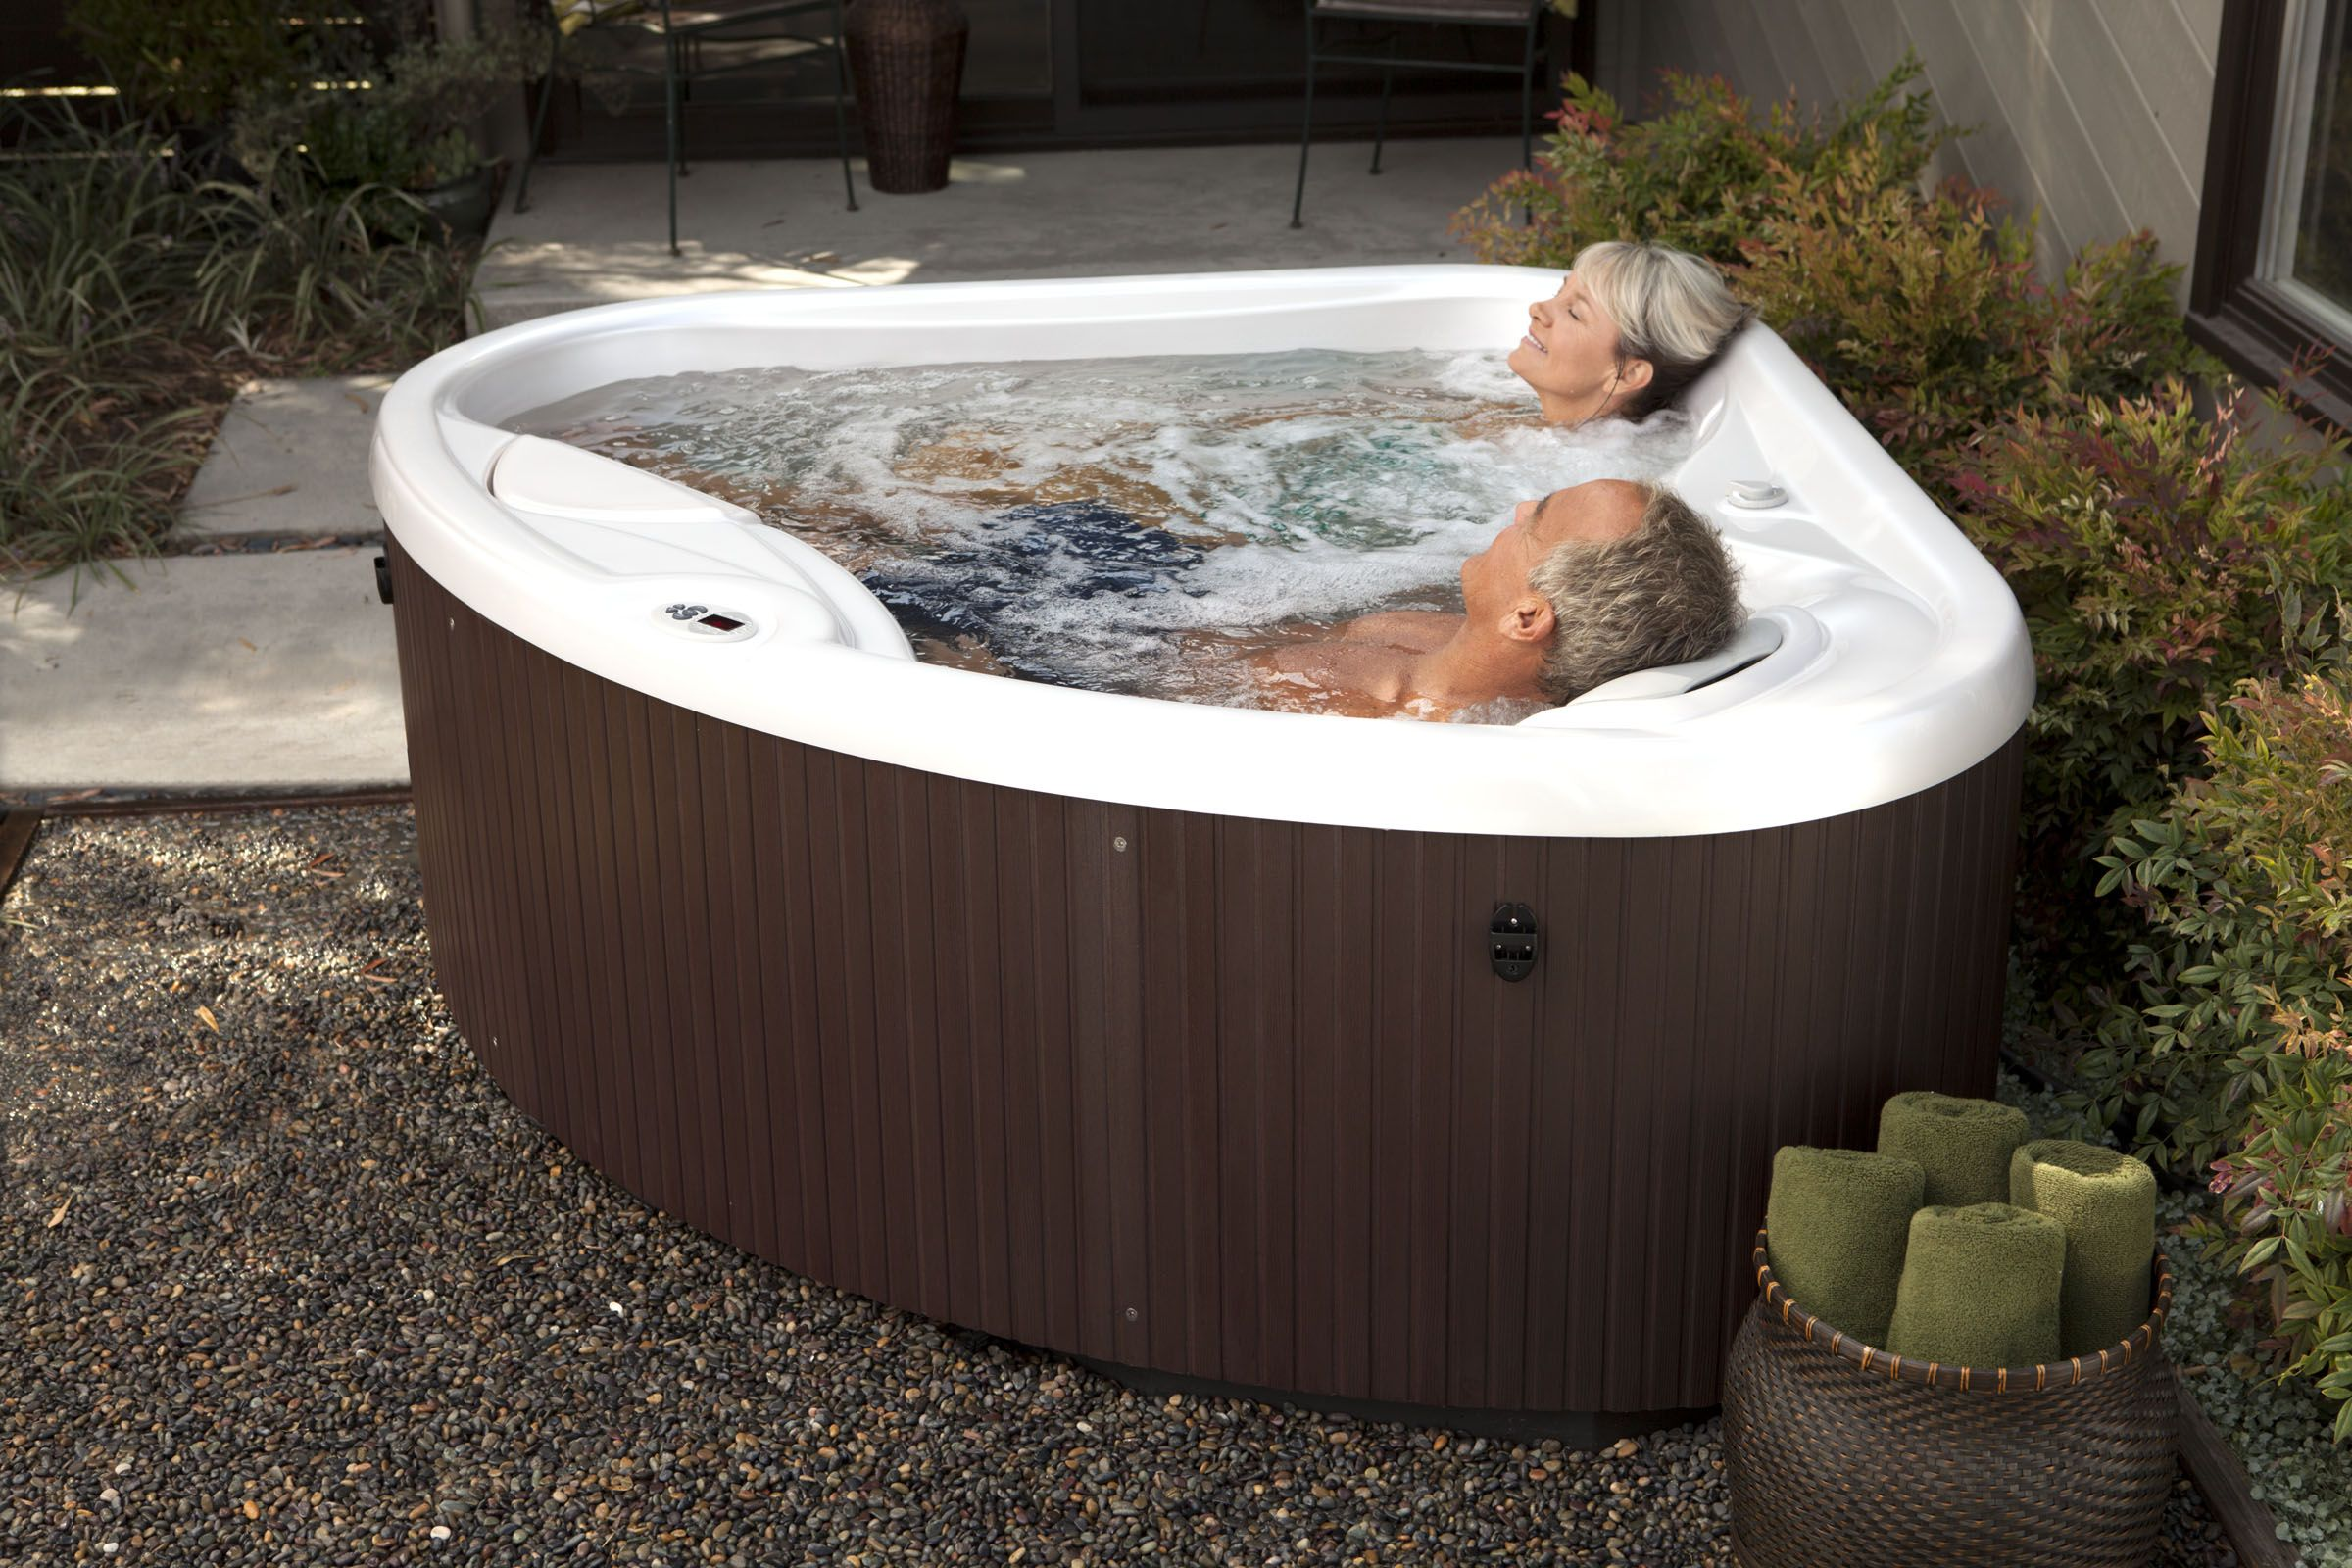 Hot Spot Value Hot Tubs Reviews And Specs Hot Spring Spas Small Hot Tub Hot Tub Outdoor Corner Hot Tubs